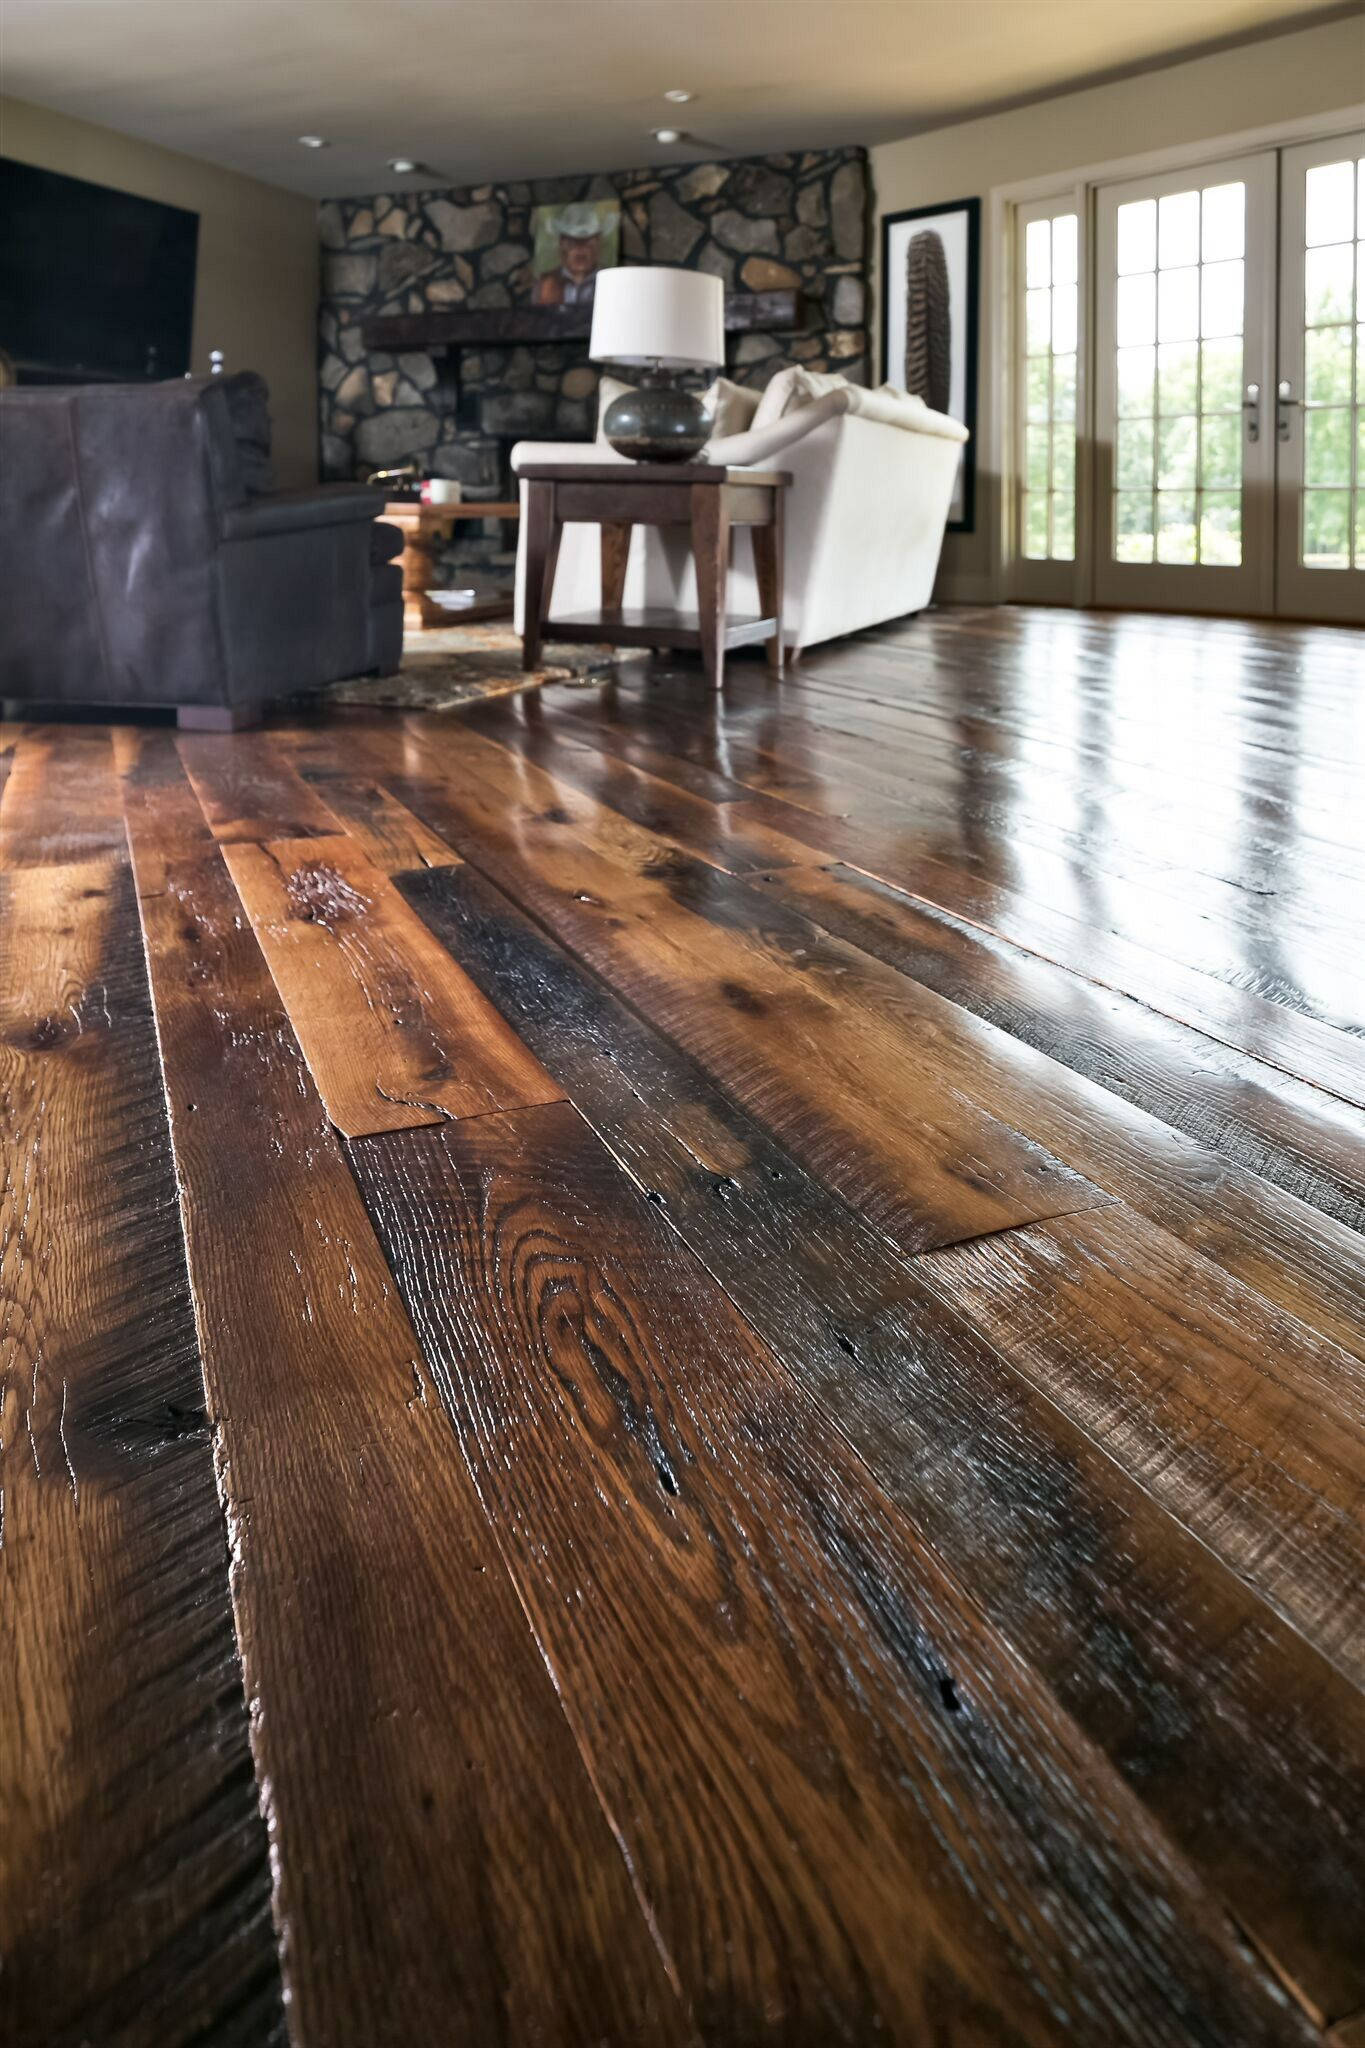 Love These Floors Hoping This Is What Our Floors Will End Up Like When We Mill The 100 Year Old T Small House Interior Design Wood Floor Design Rustic House